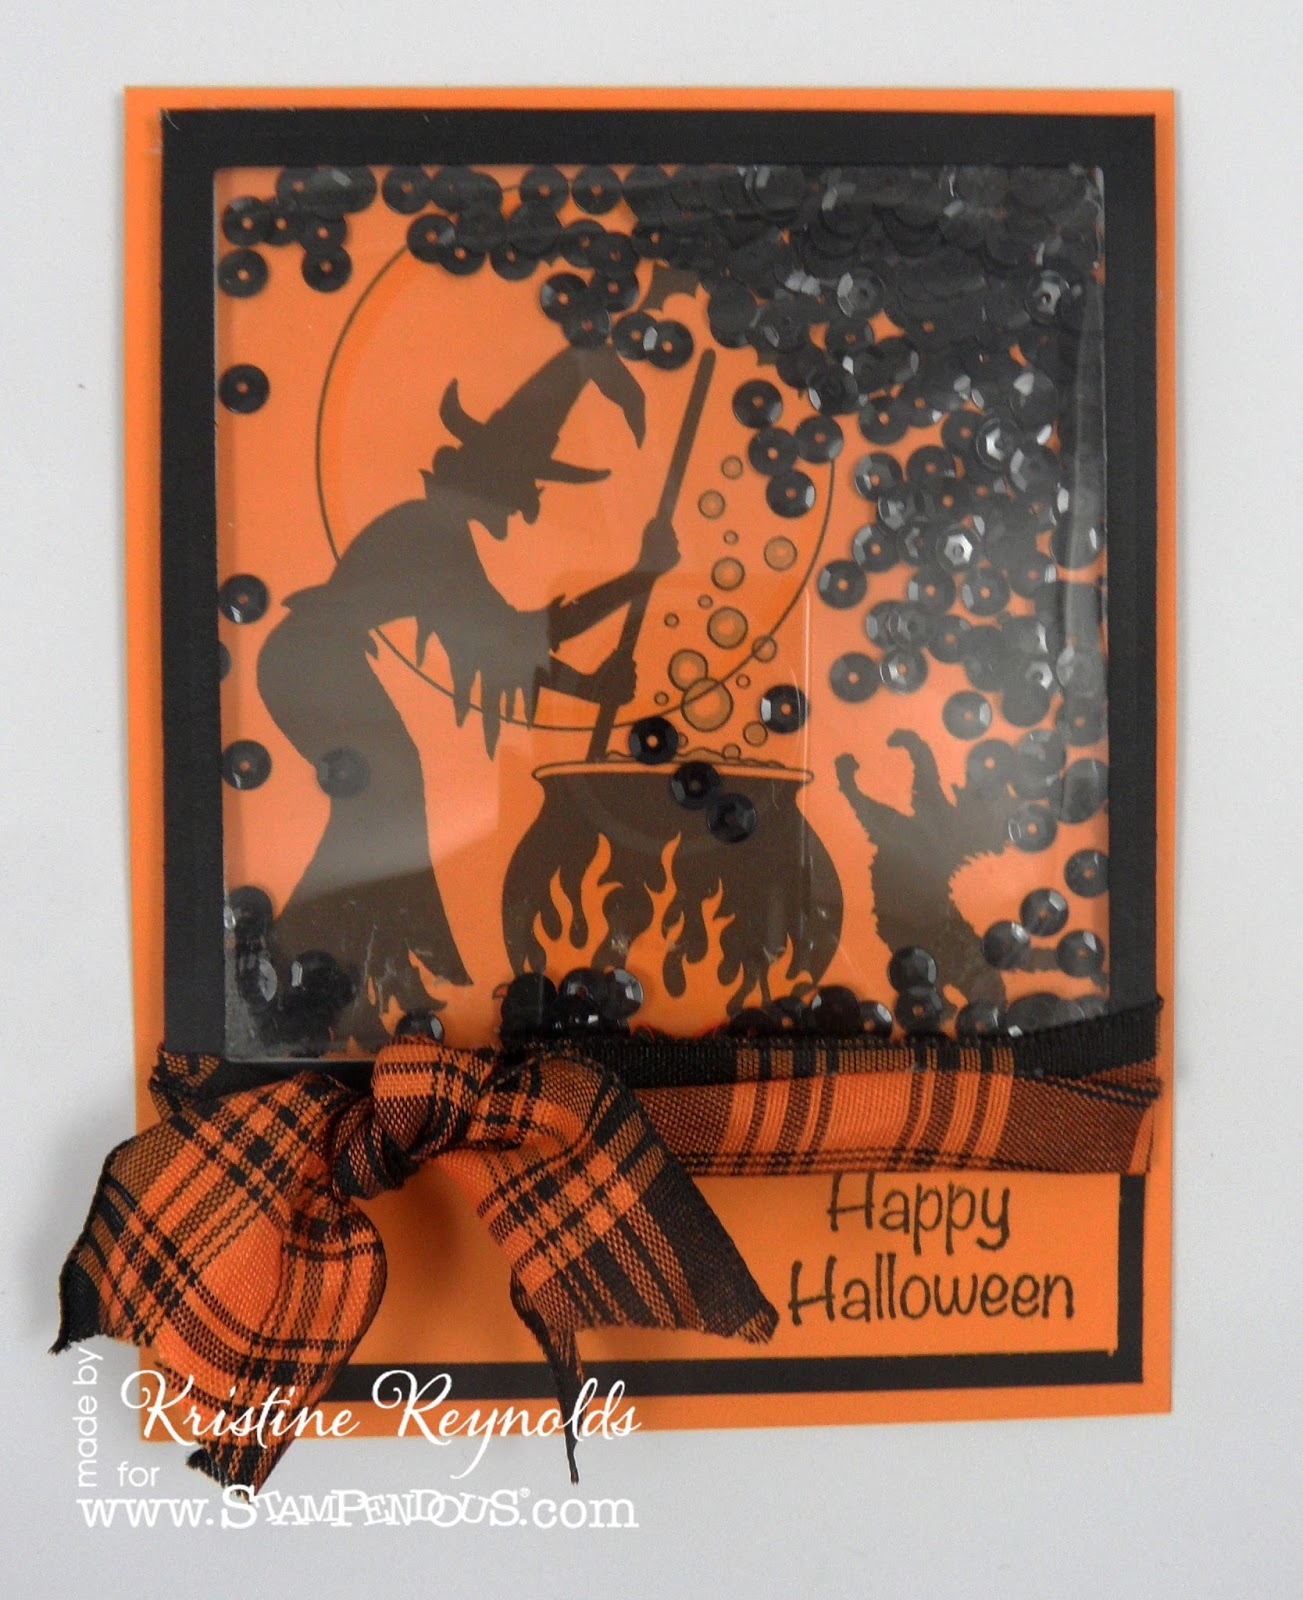 Stamping & Scrapping In California: Halloween Shaker